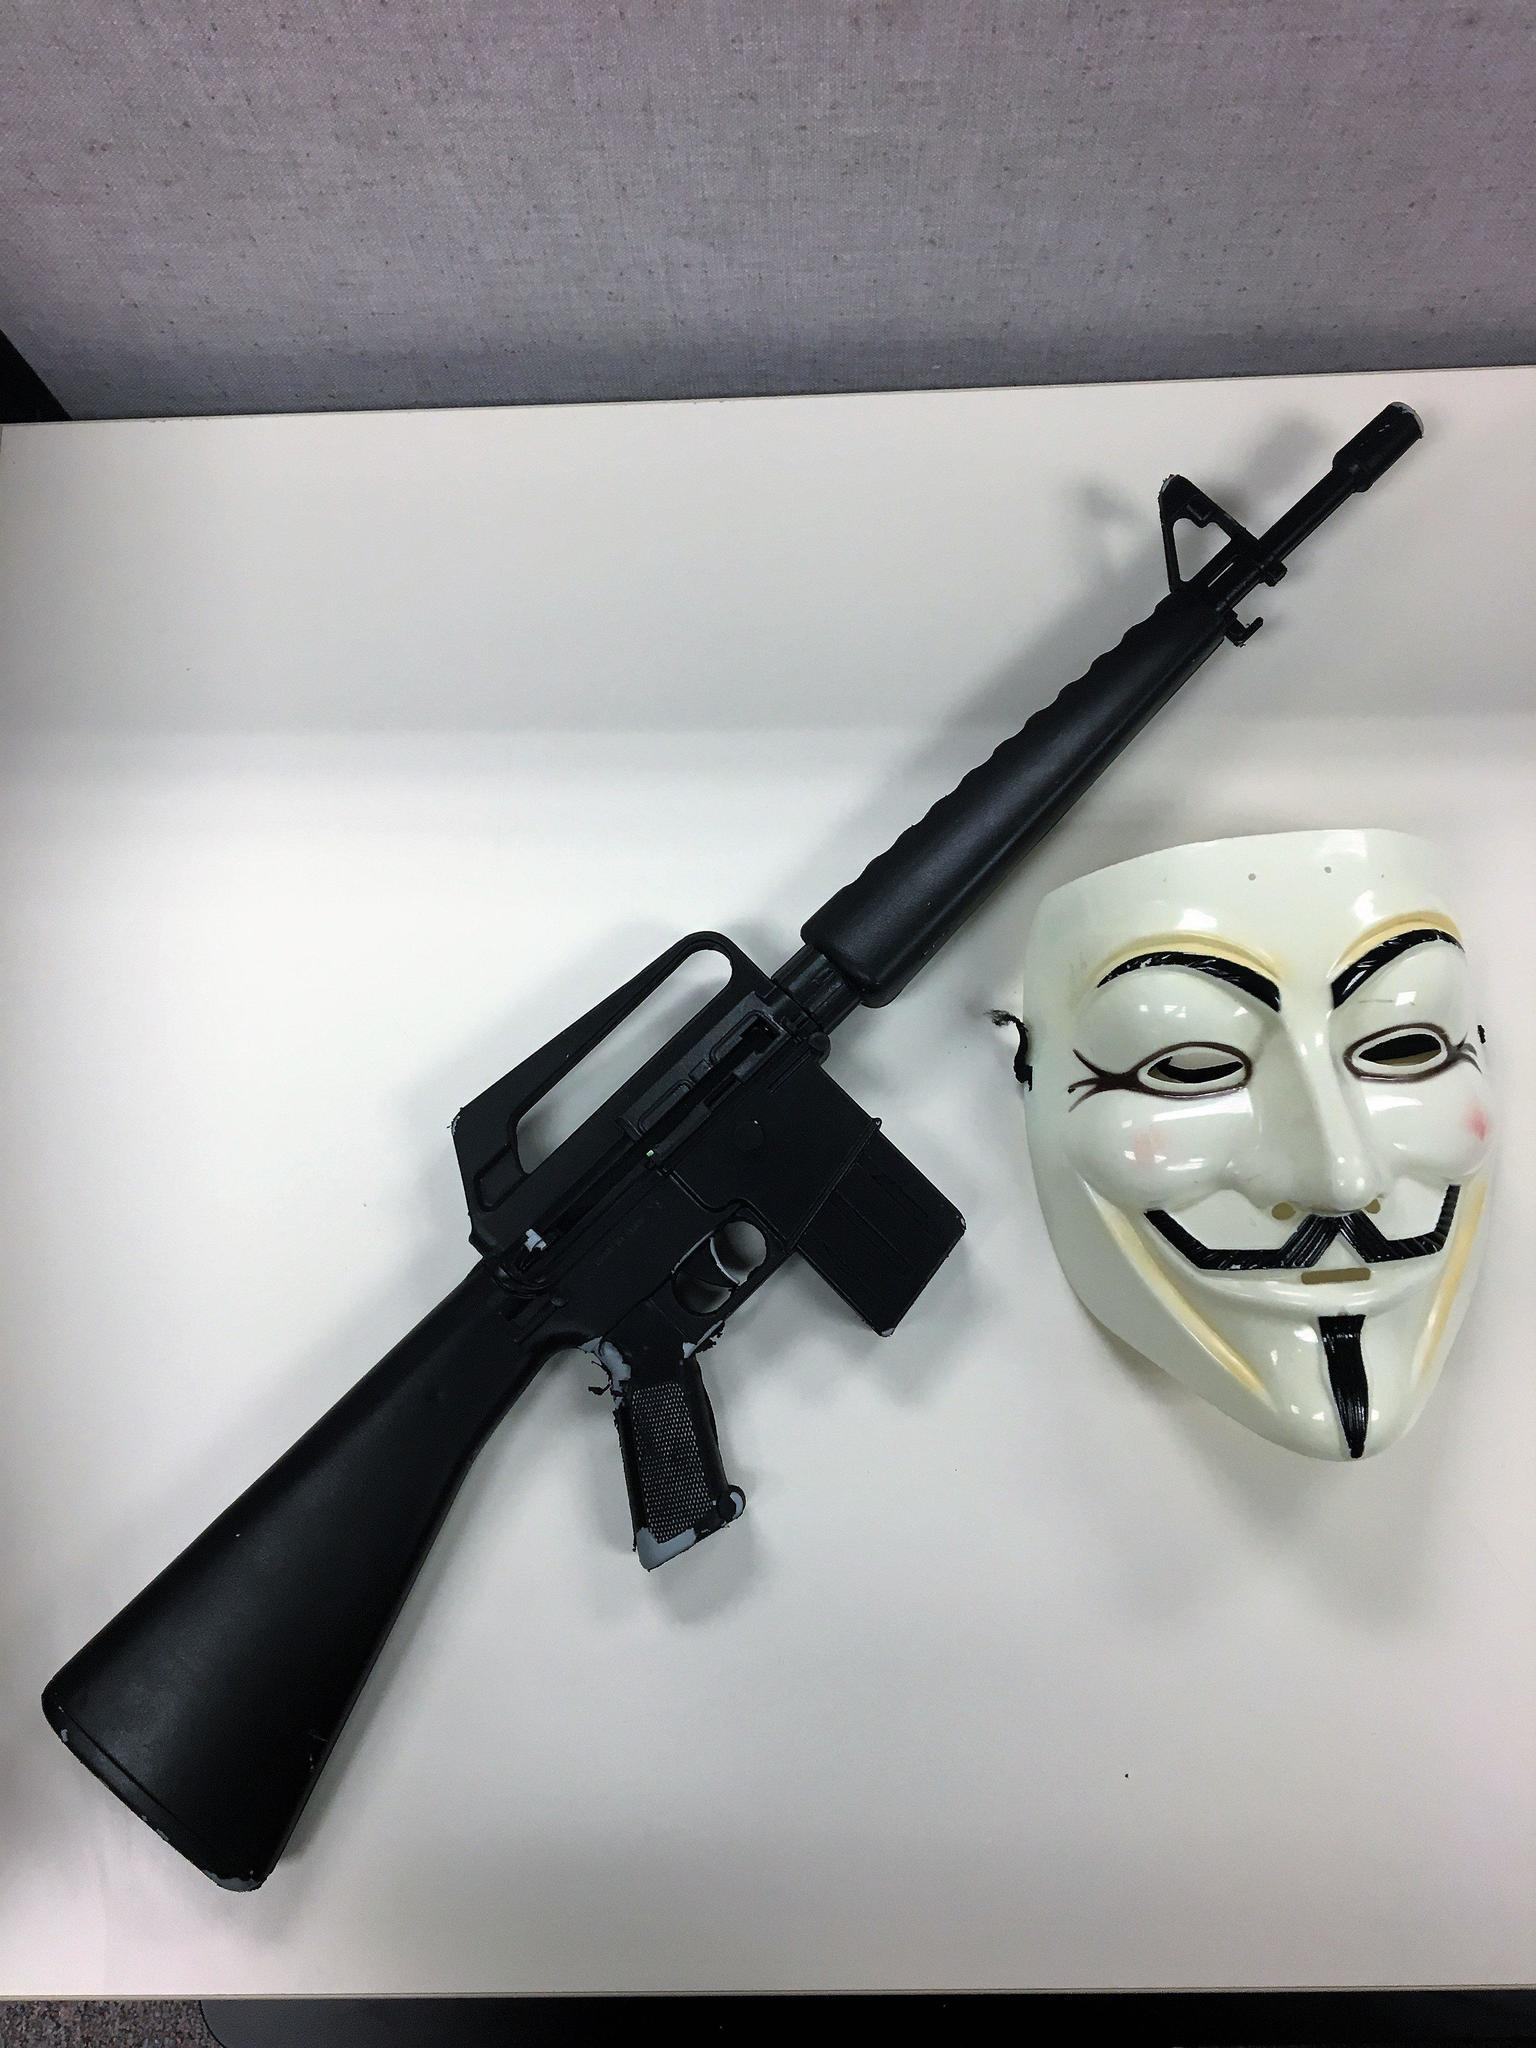 Masked Mundelein juvenile pointed replica assault rifle at drivers near Long Grove: police